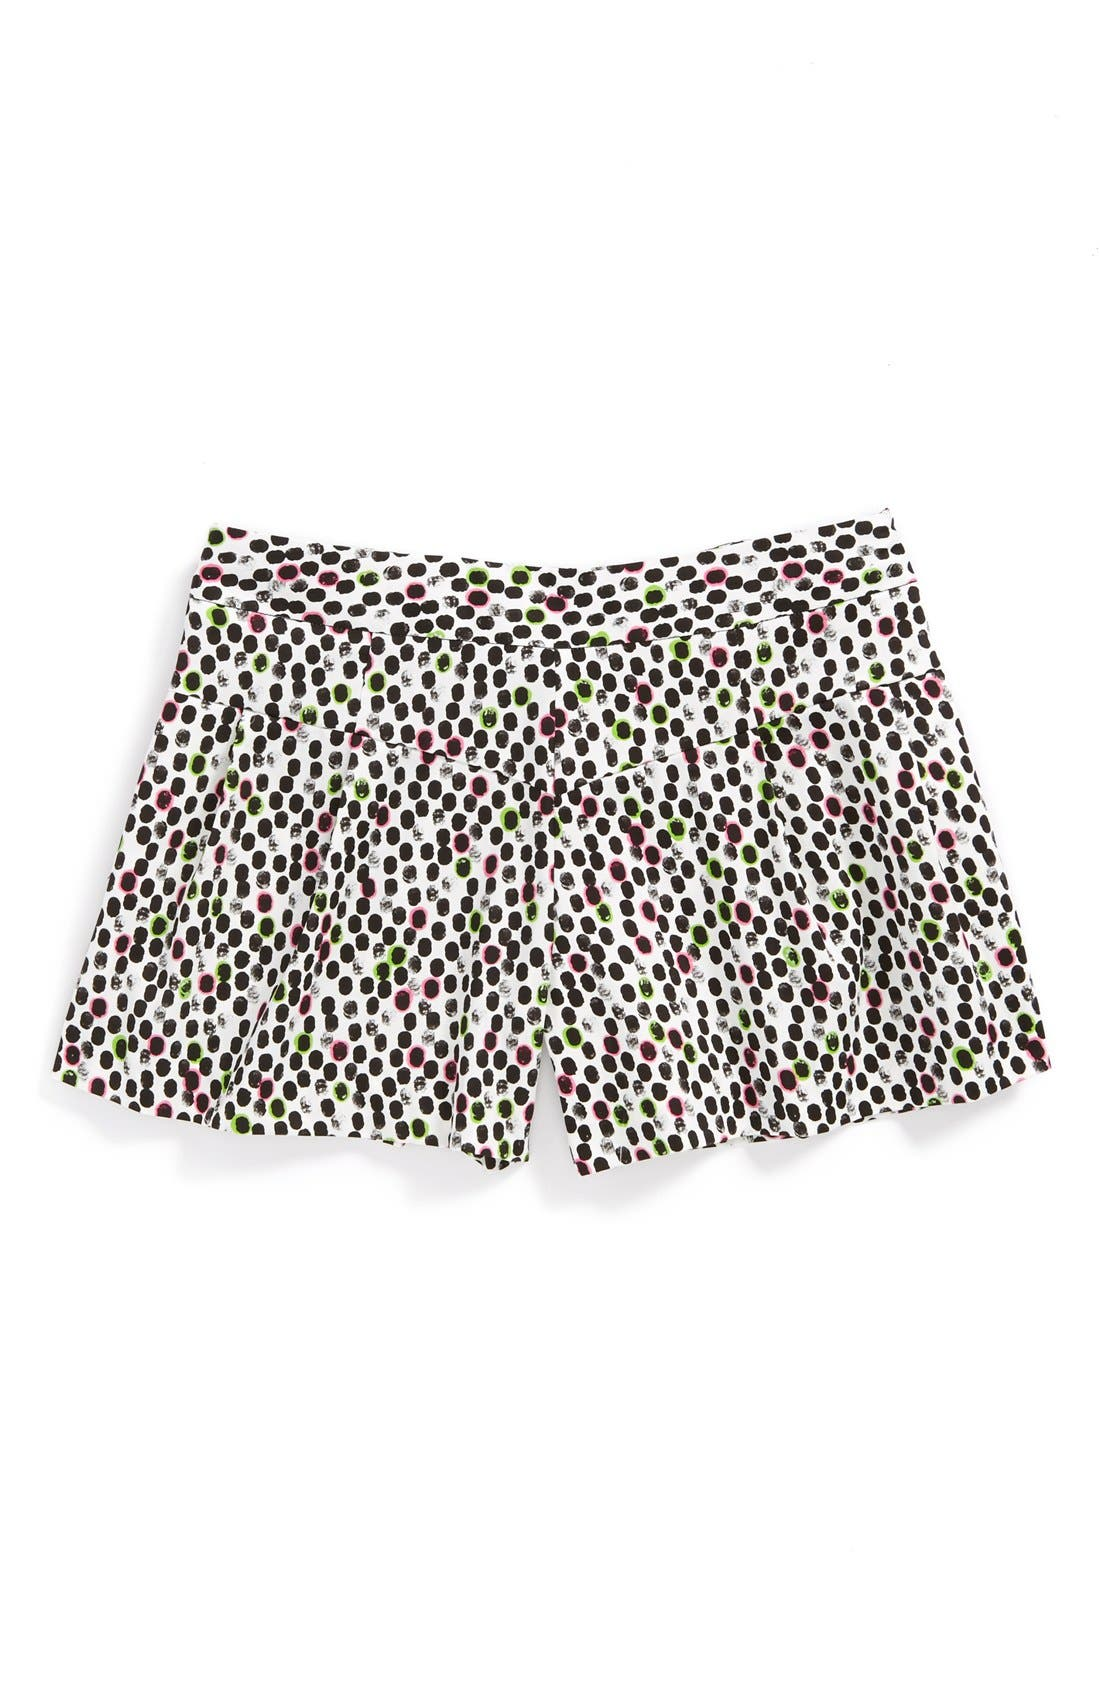 Main Image - Milly Minis 'Ocelot' Shorts (Big Girls)